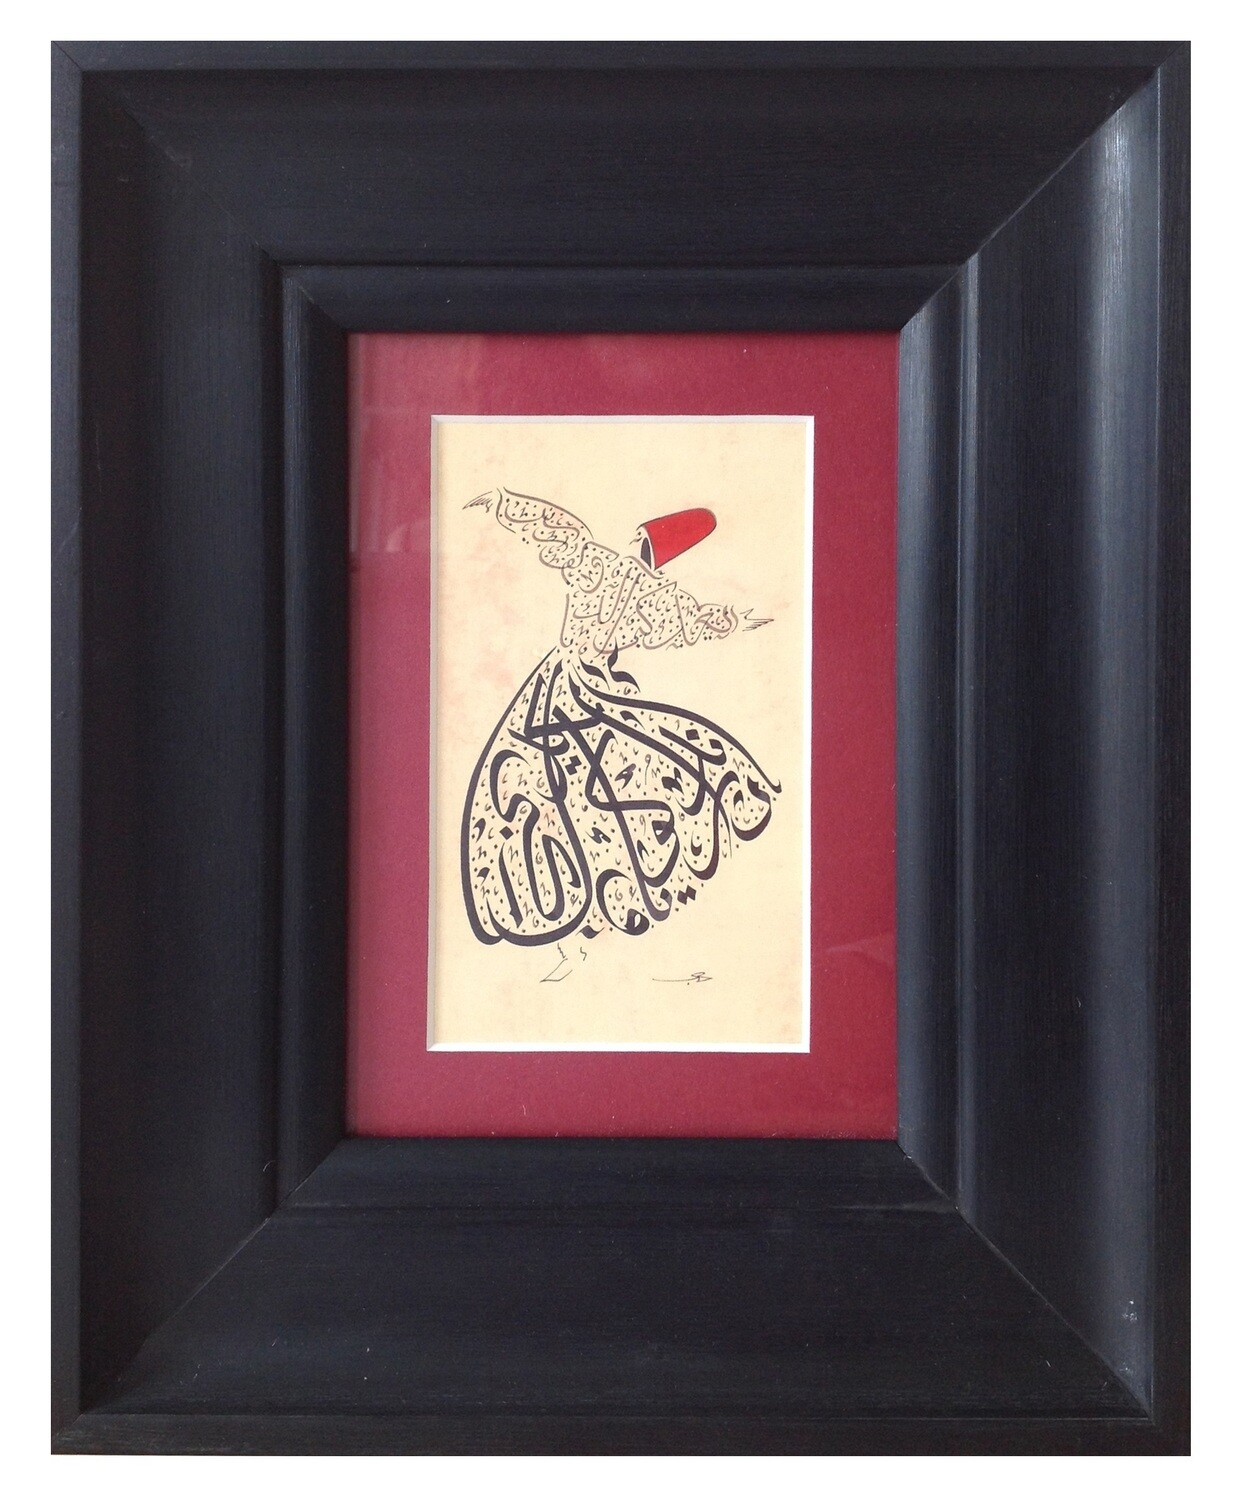 Whirling Dervish Red Rumi Poetry in Black Curved Frame